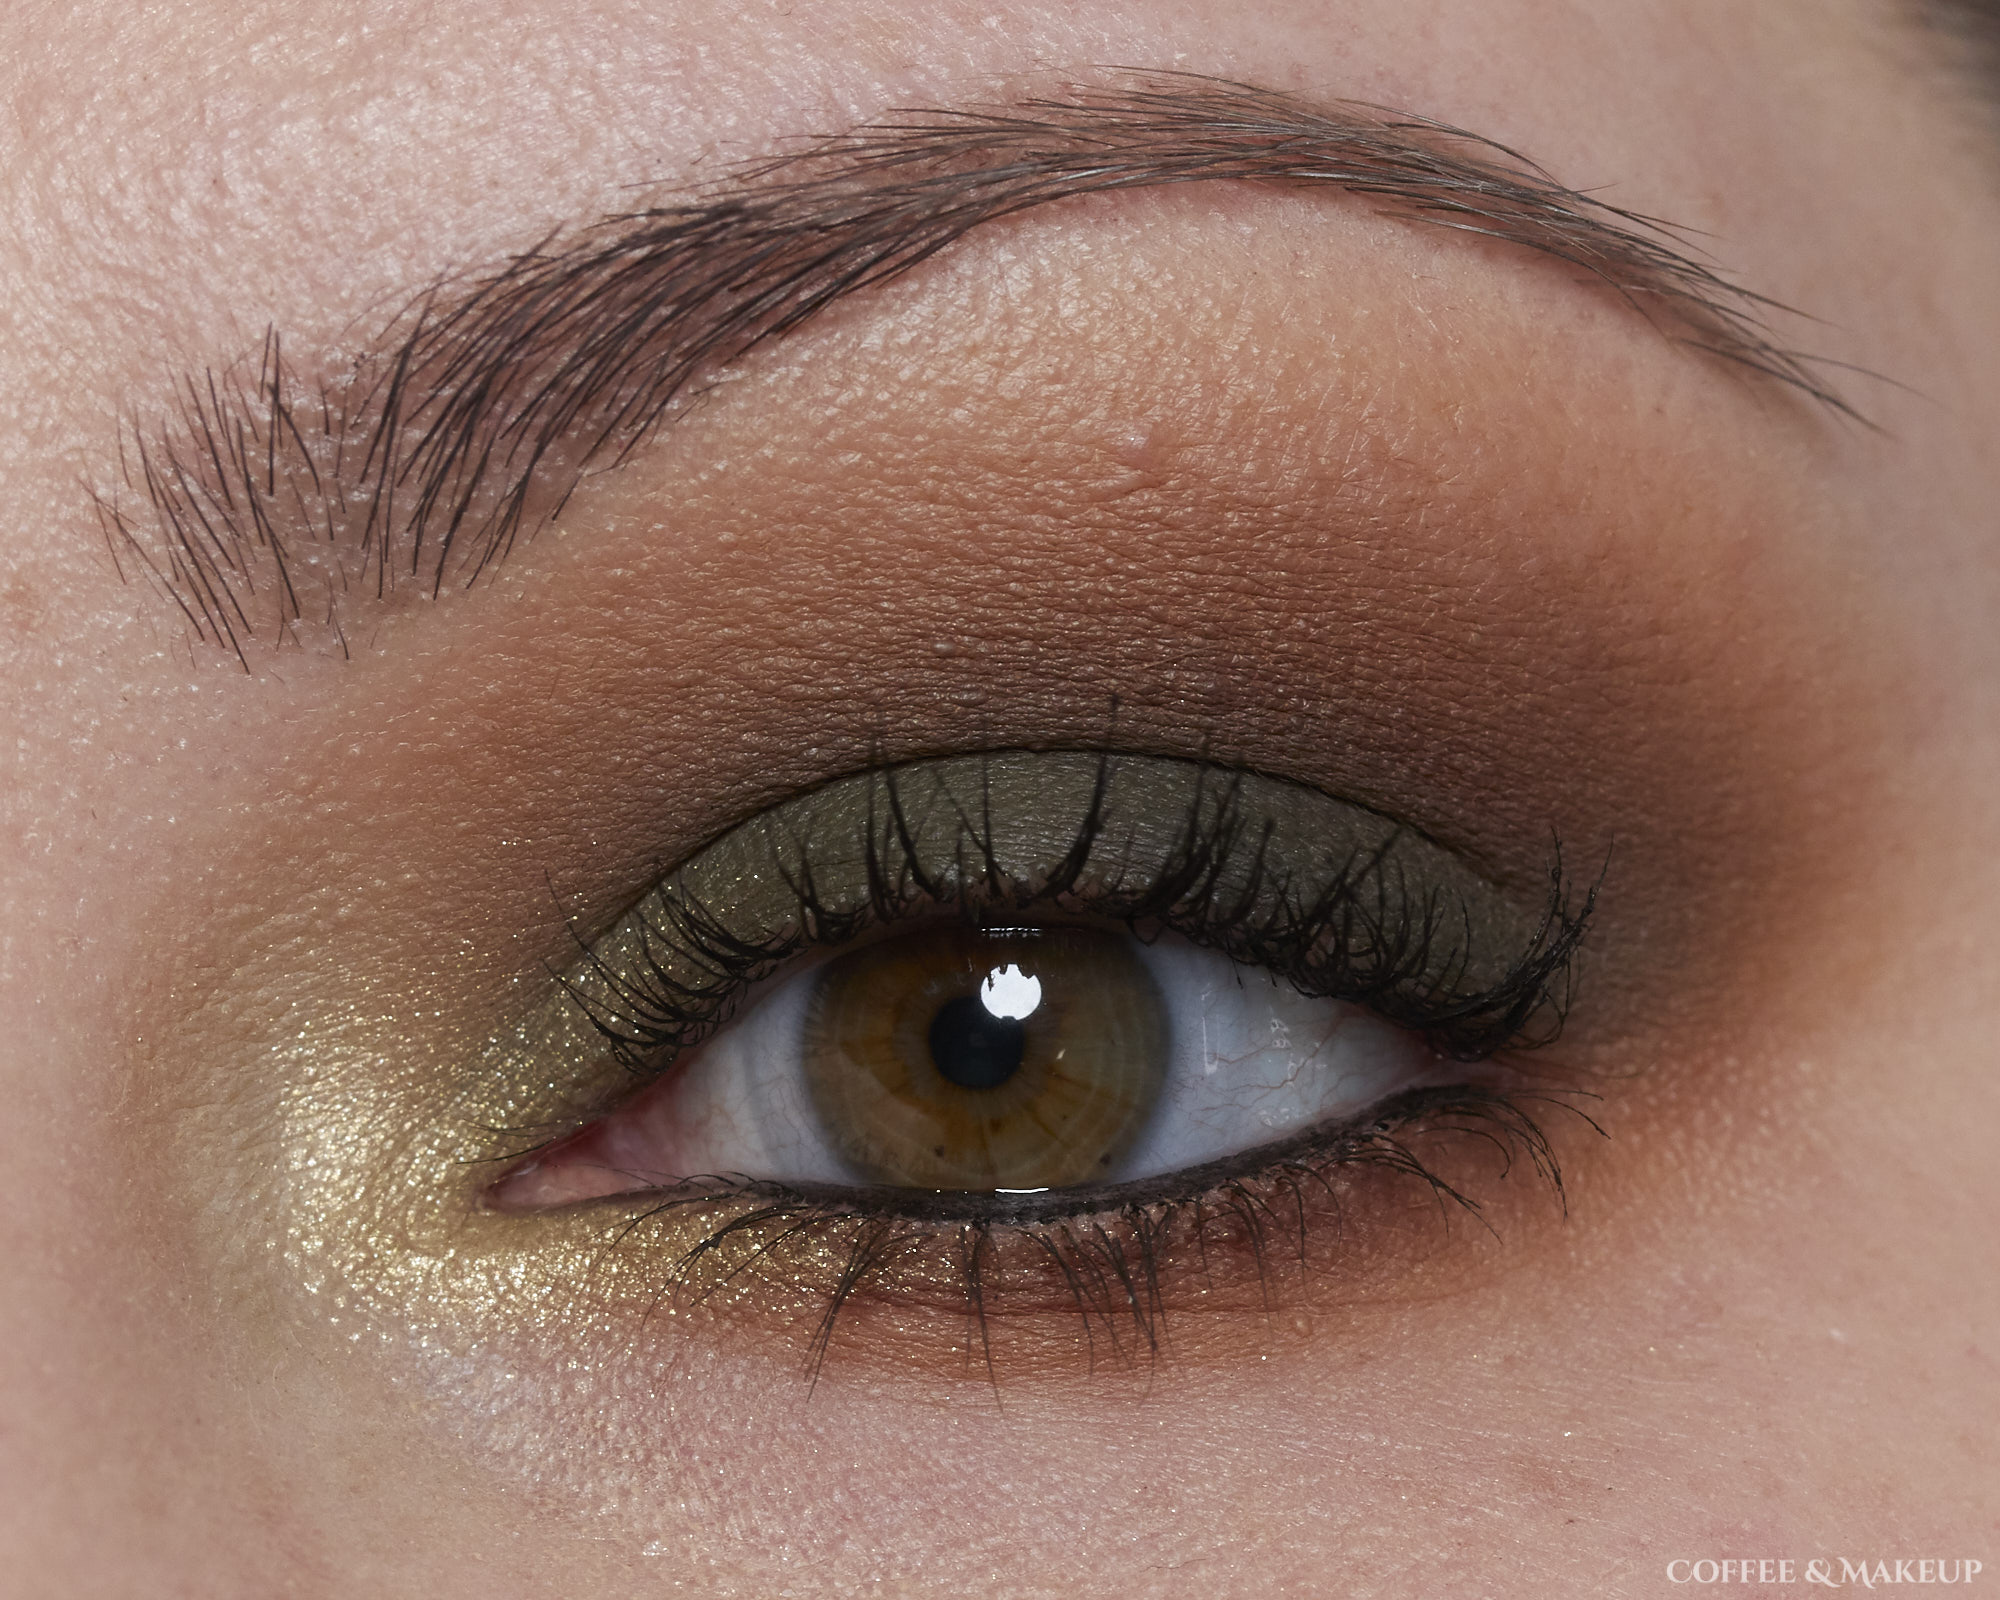 Makeup Geek Eyeshadow Look #7